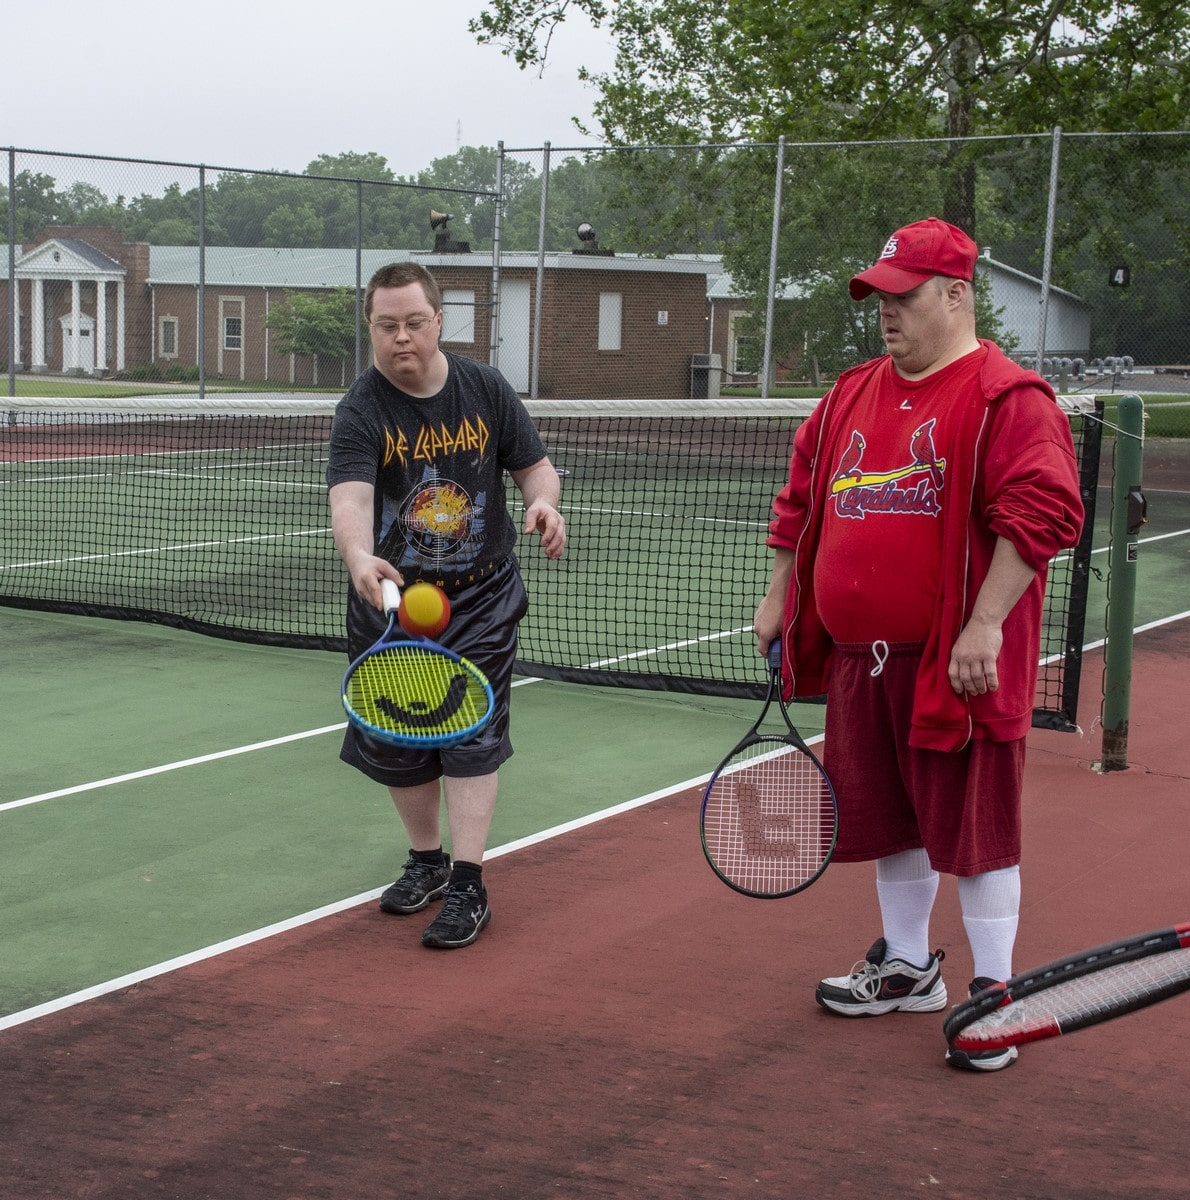 An athlete juggles a tennis ball on their racket while another athlete looks on